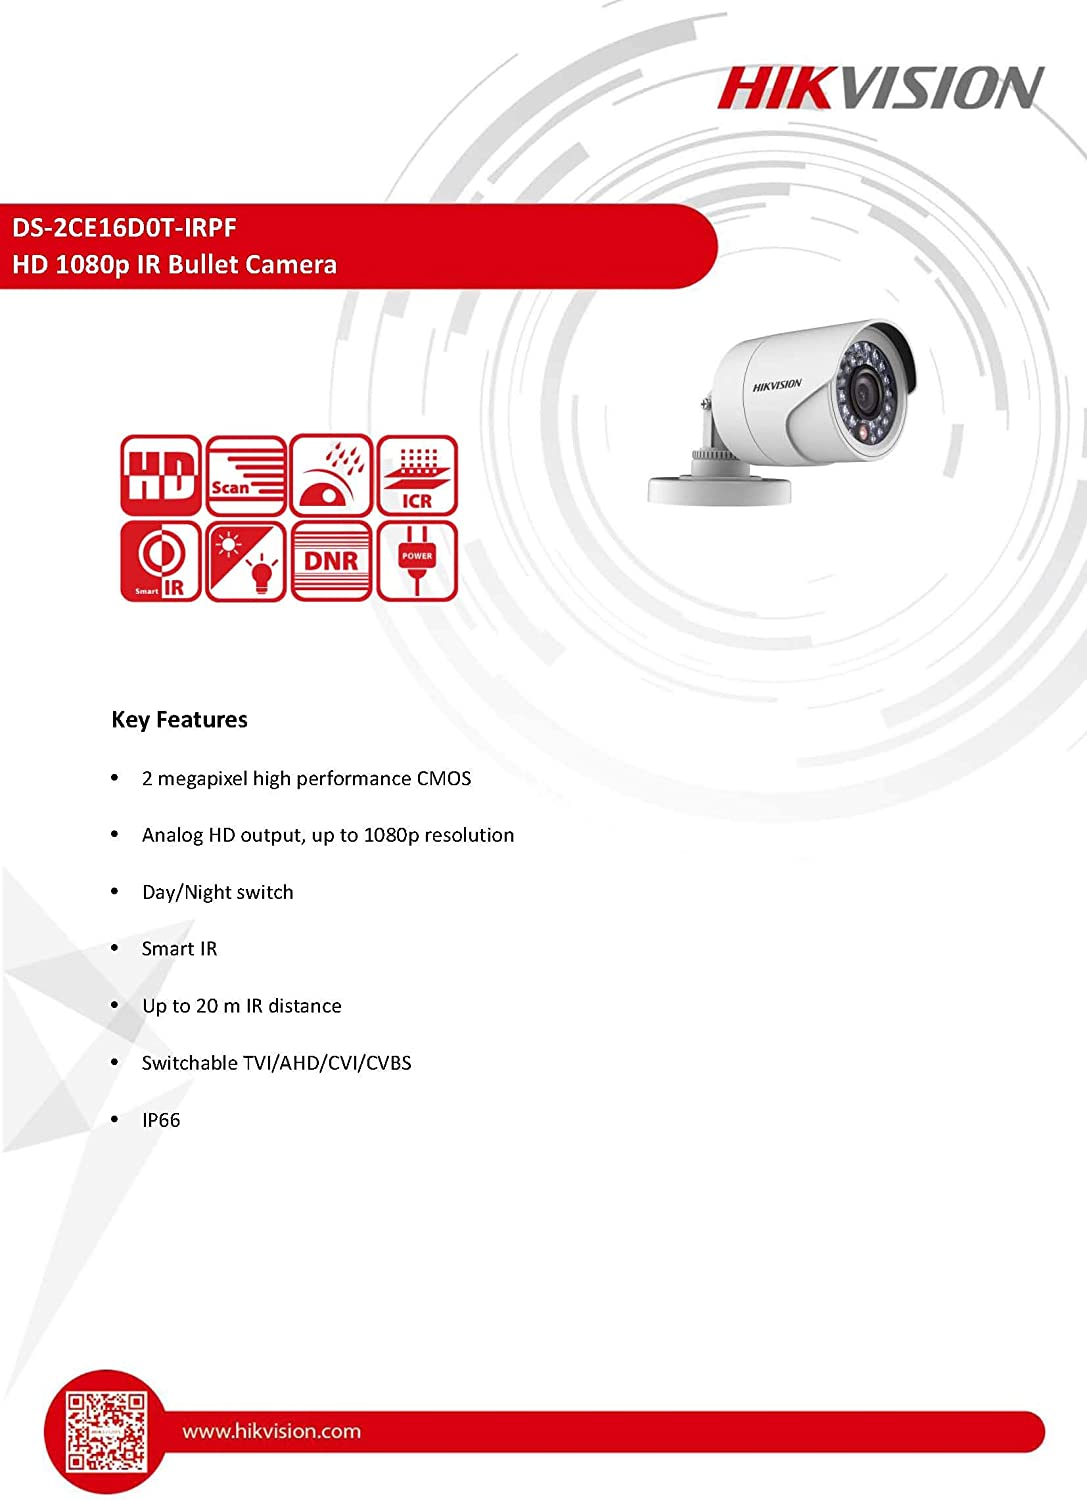 Hikvision Turbo Hd Ds 2ce16d0t Irpf 3 6mm Full Hd 1080p Waterproof Ir Bullet Camera Hikvision C Coaxitron 4 In 1 Camera Hd Tvi Ahd Hd Cvi Cvbs With It S Own Joystick Mode Switch Baumarkt